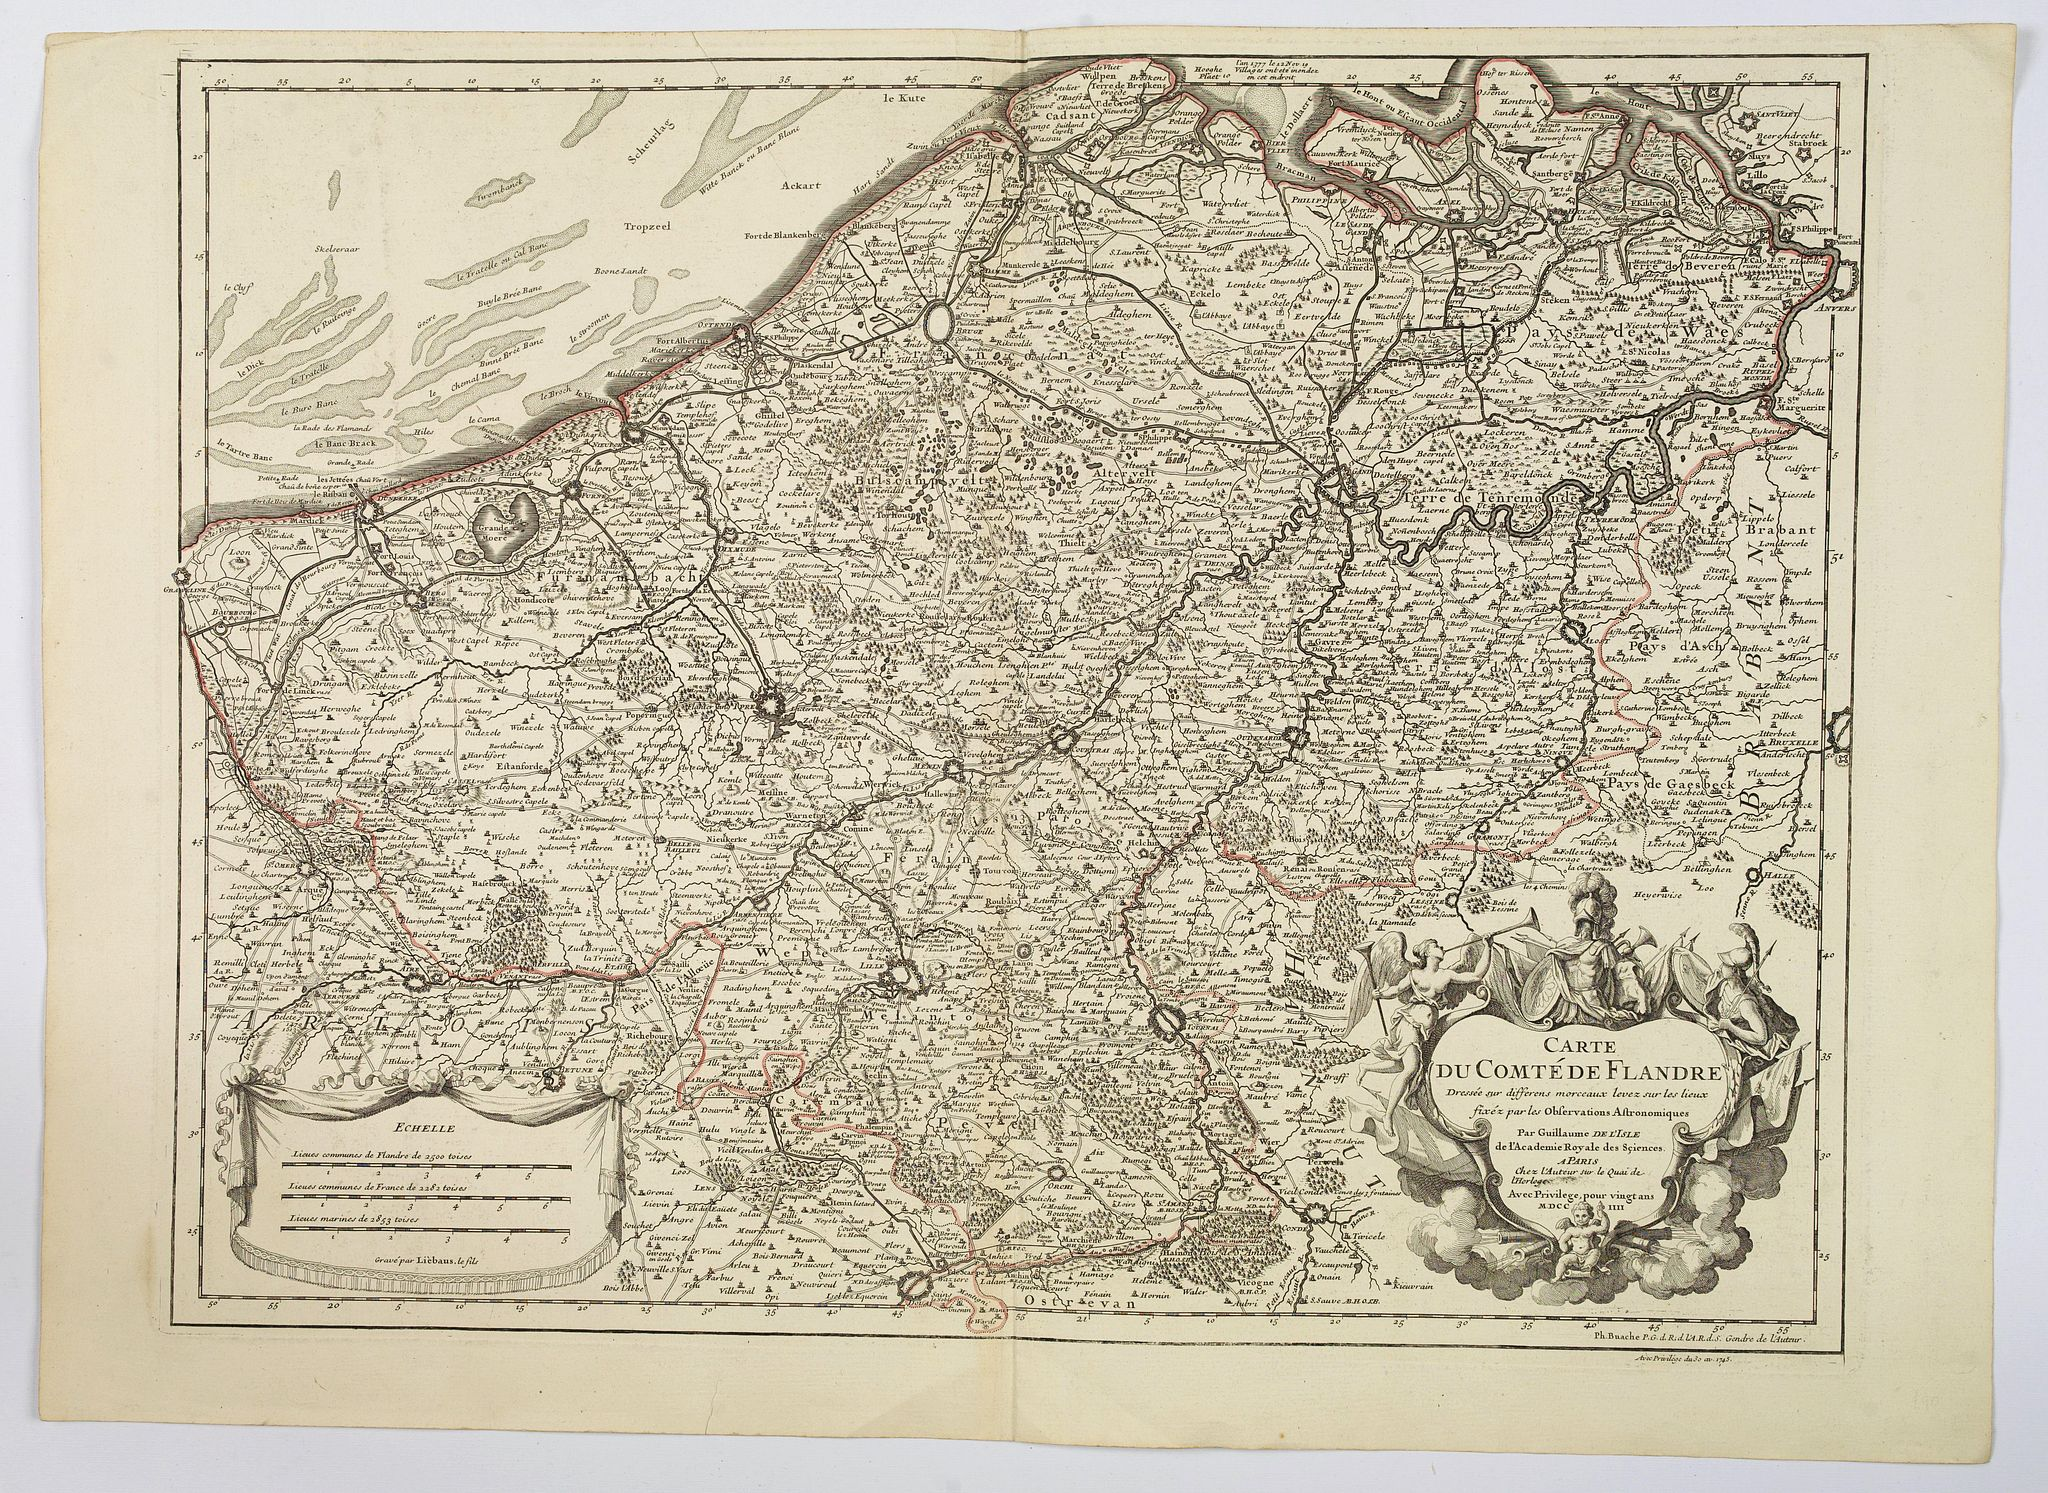 DELISLE / BUACHE / DEZAUCHE.,  Carte du Comte de Flandre. . ., antique map, old maps